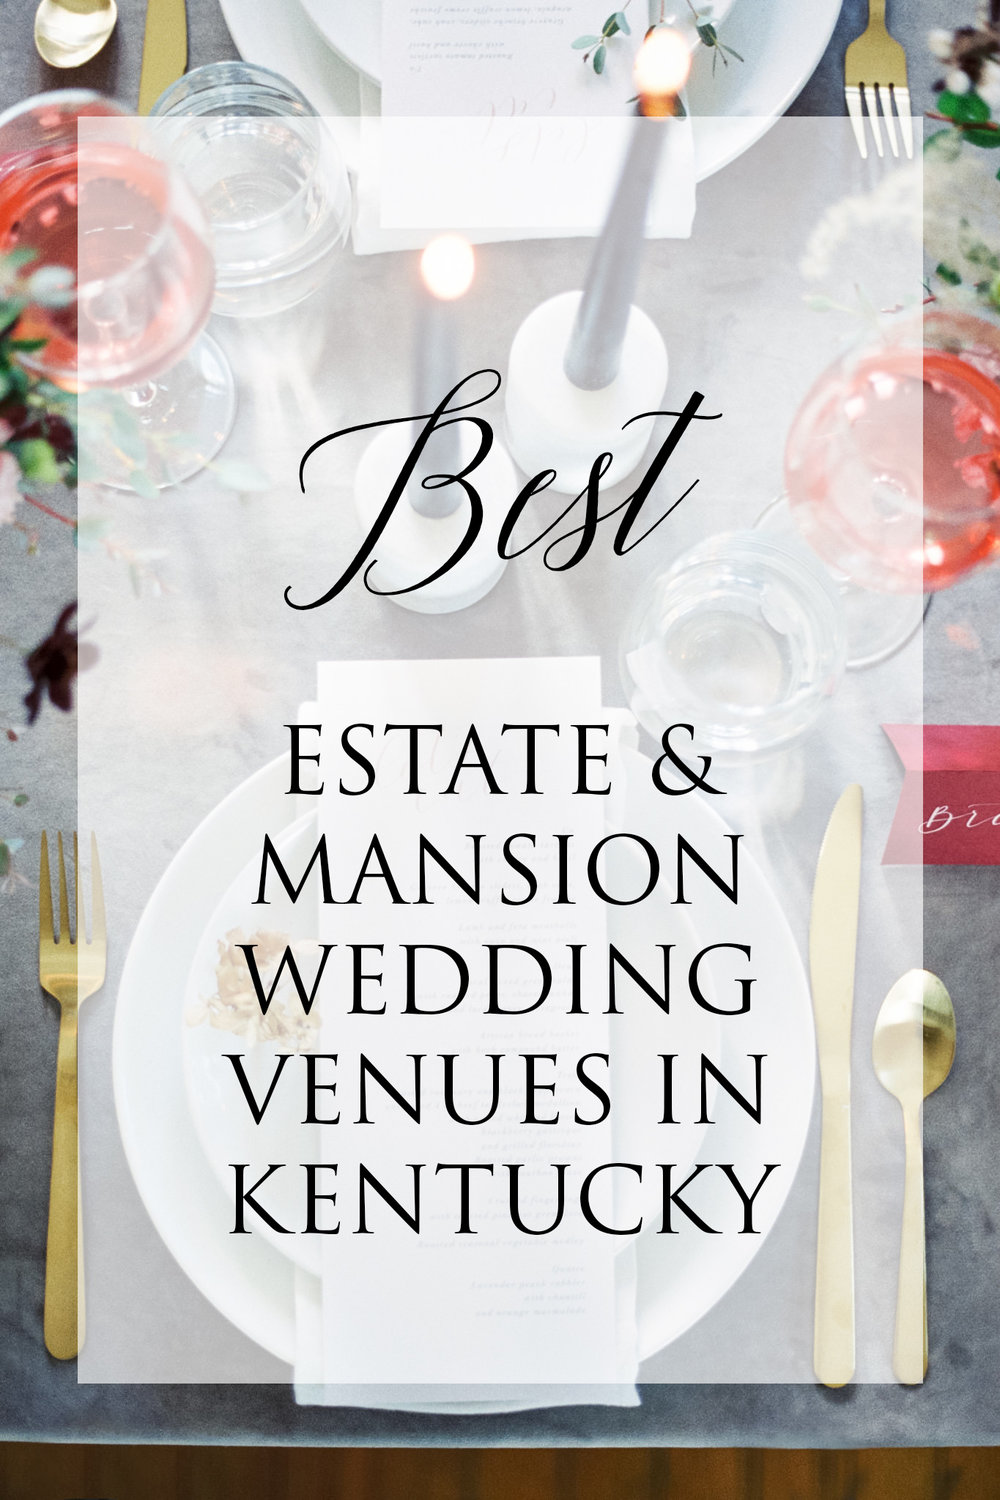 Best Estate & Mansion Wedding Venues in Kentucky